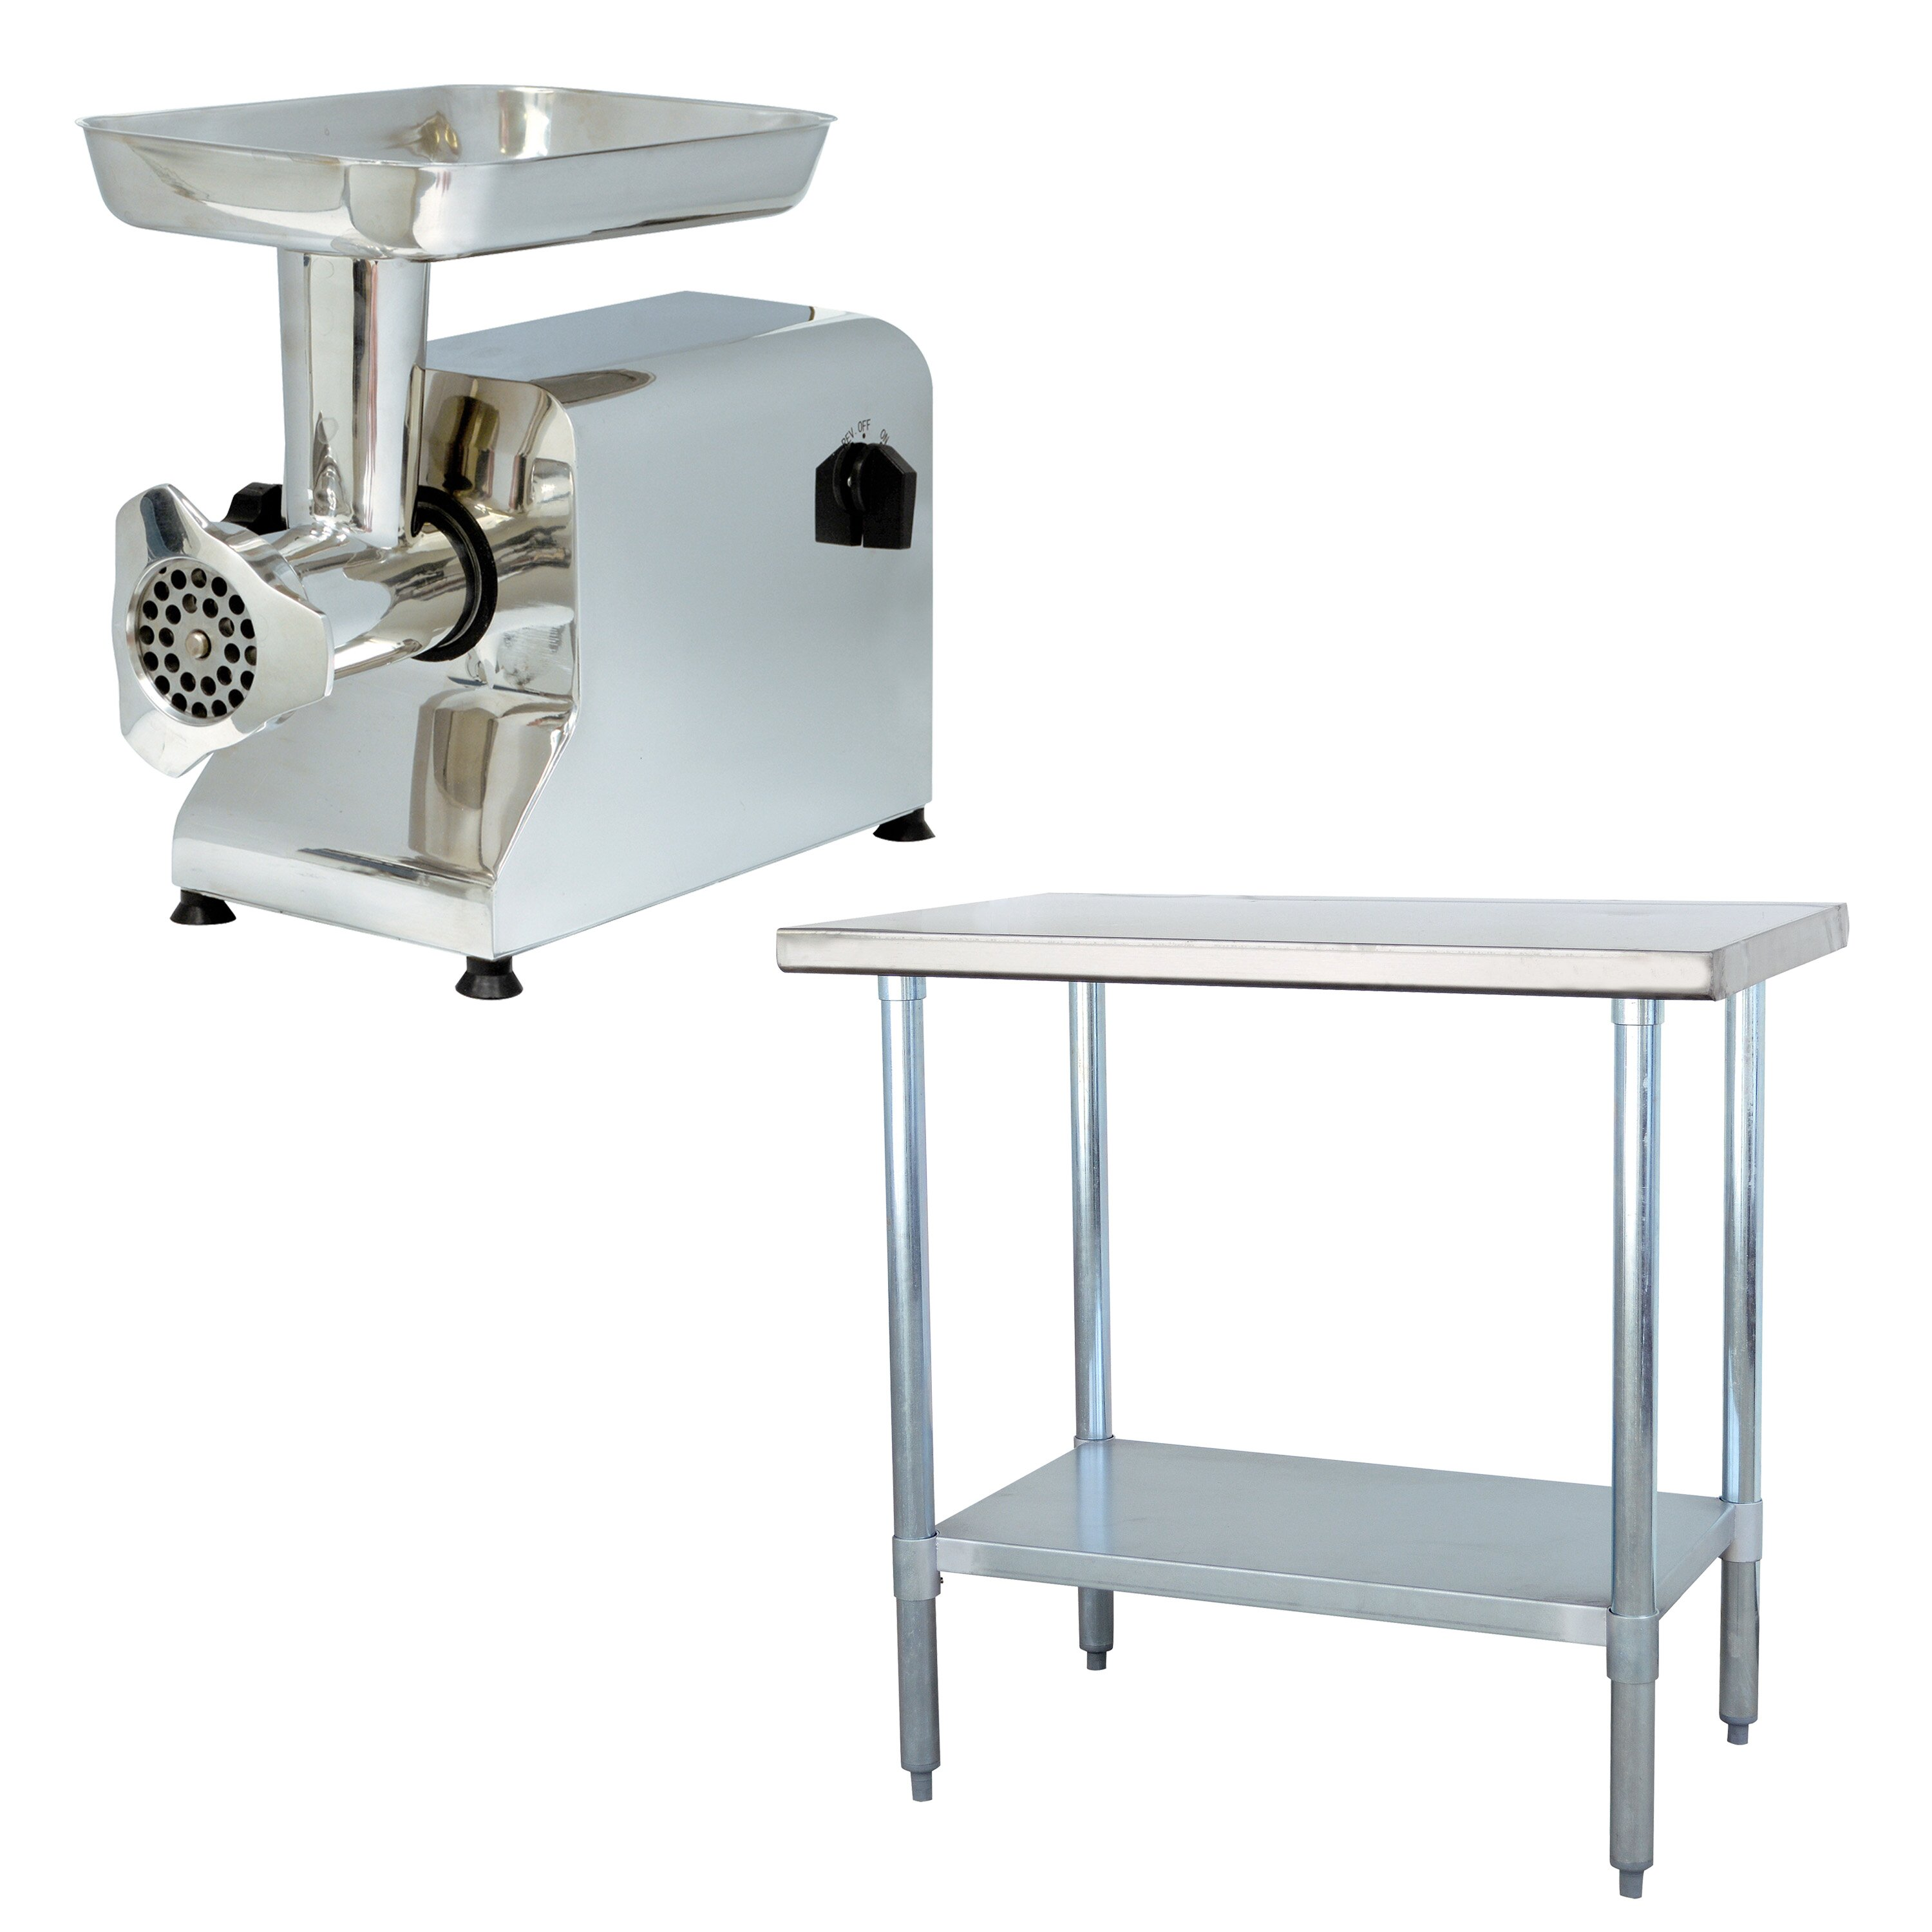 Buffalo tools sportsman series meat grinder and work table for Table grinder